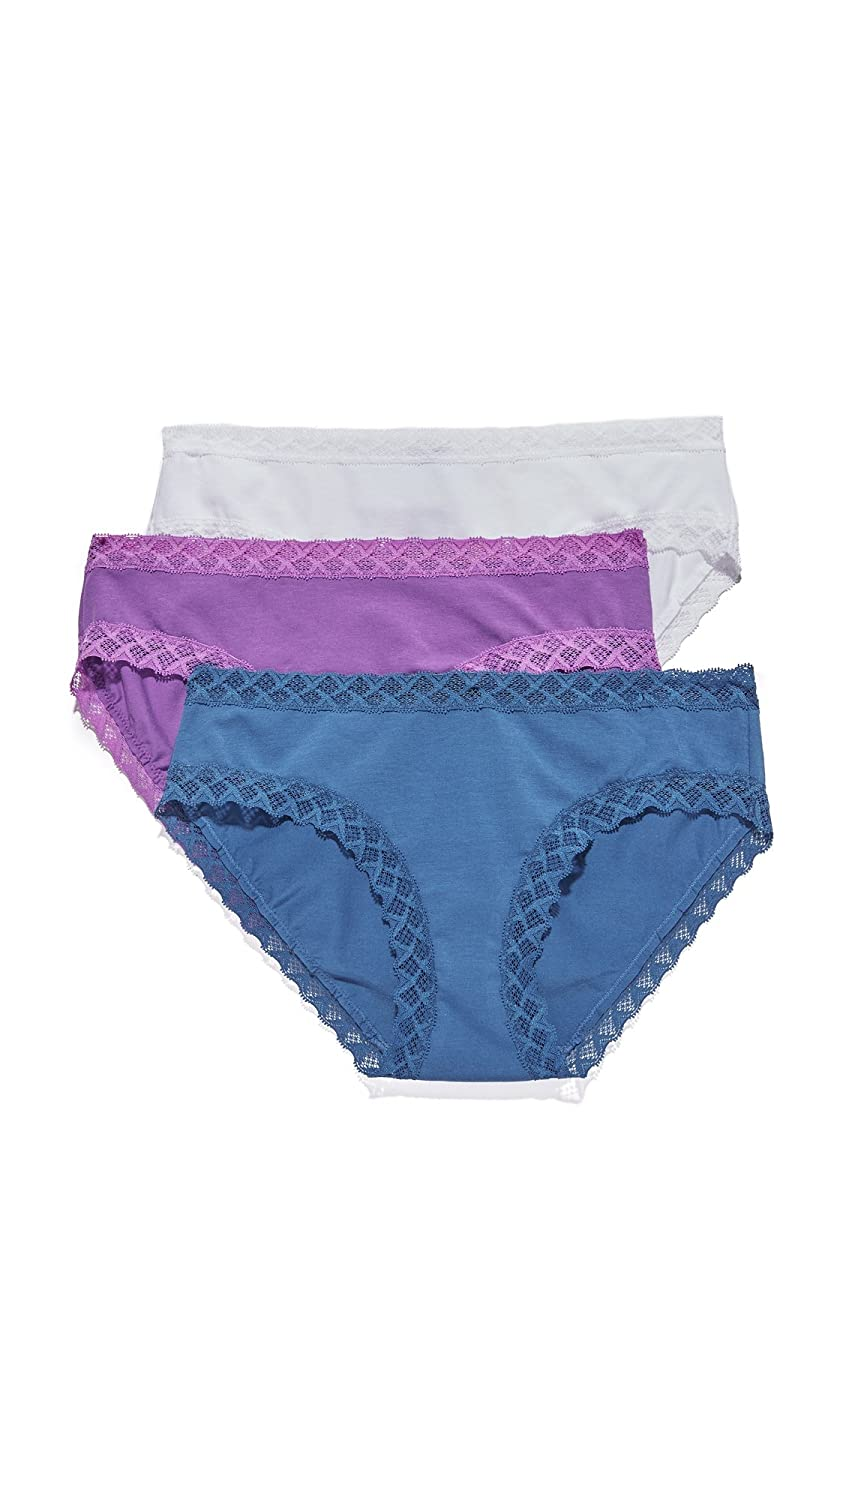 a302ab01bd06 Natori Women's Bliss Cotton Girl Brief Panty 3-Pack at Amazon Women's  Clothing store: Boy Shorts Panties